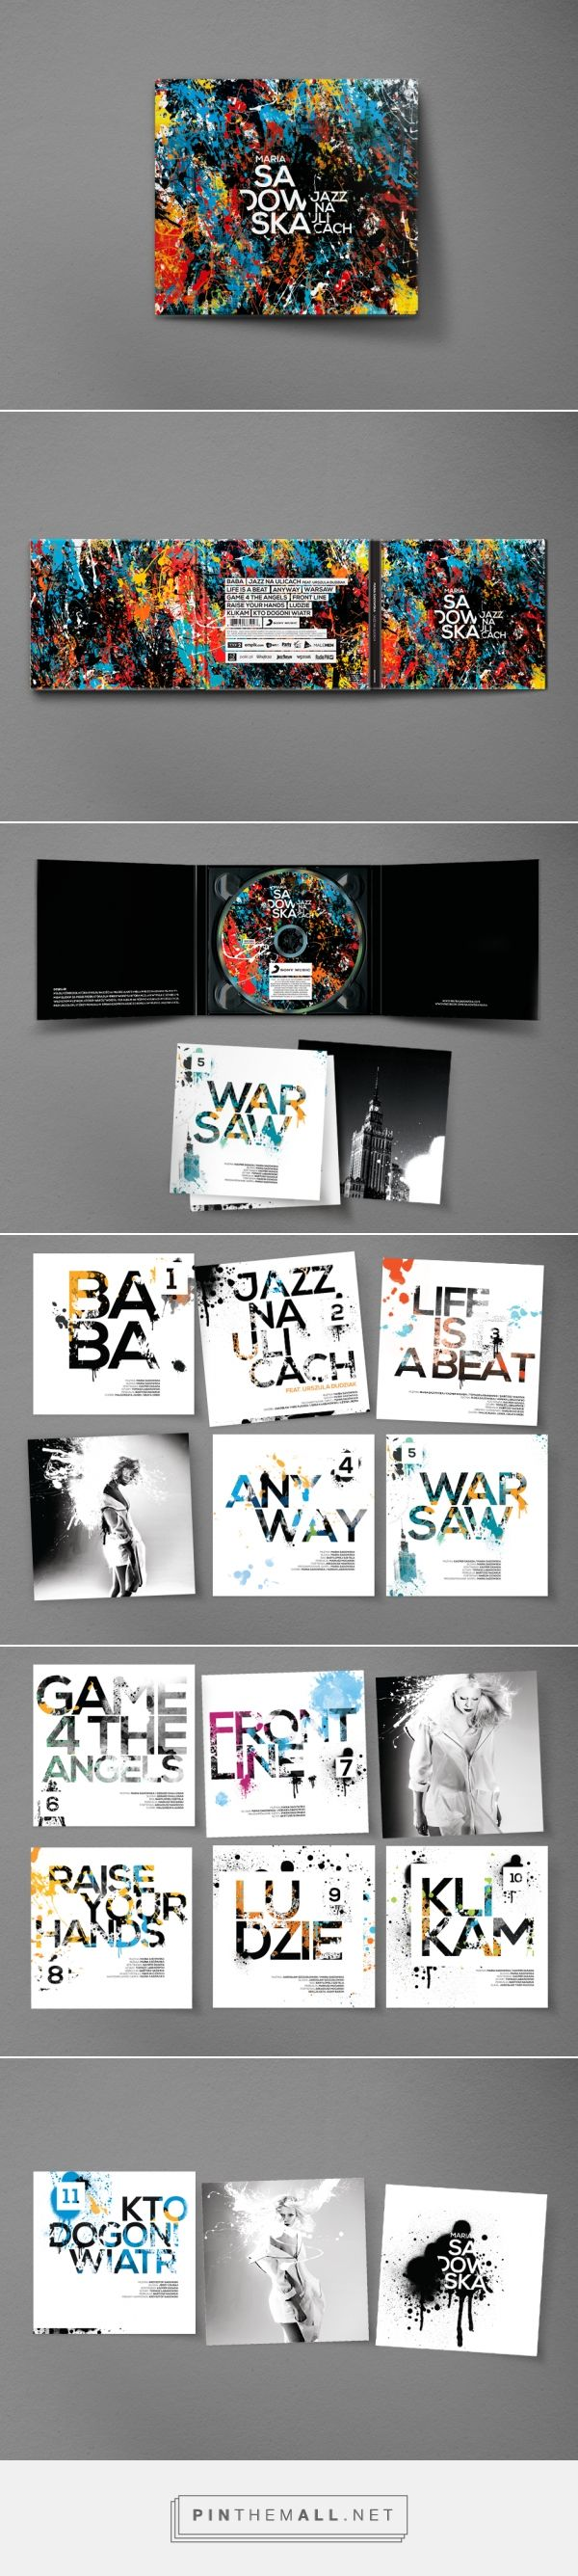 Maria Sadowska - Jazz na ulicach CD album - Packaging of the World - Creative Package Design Gallery - http://www.packagingoftheworld.com/2016/07/maria-sadowska-jazz-na-ulicach.html